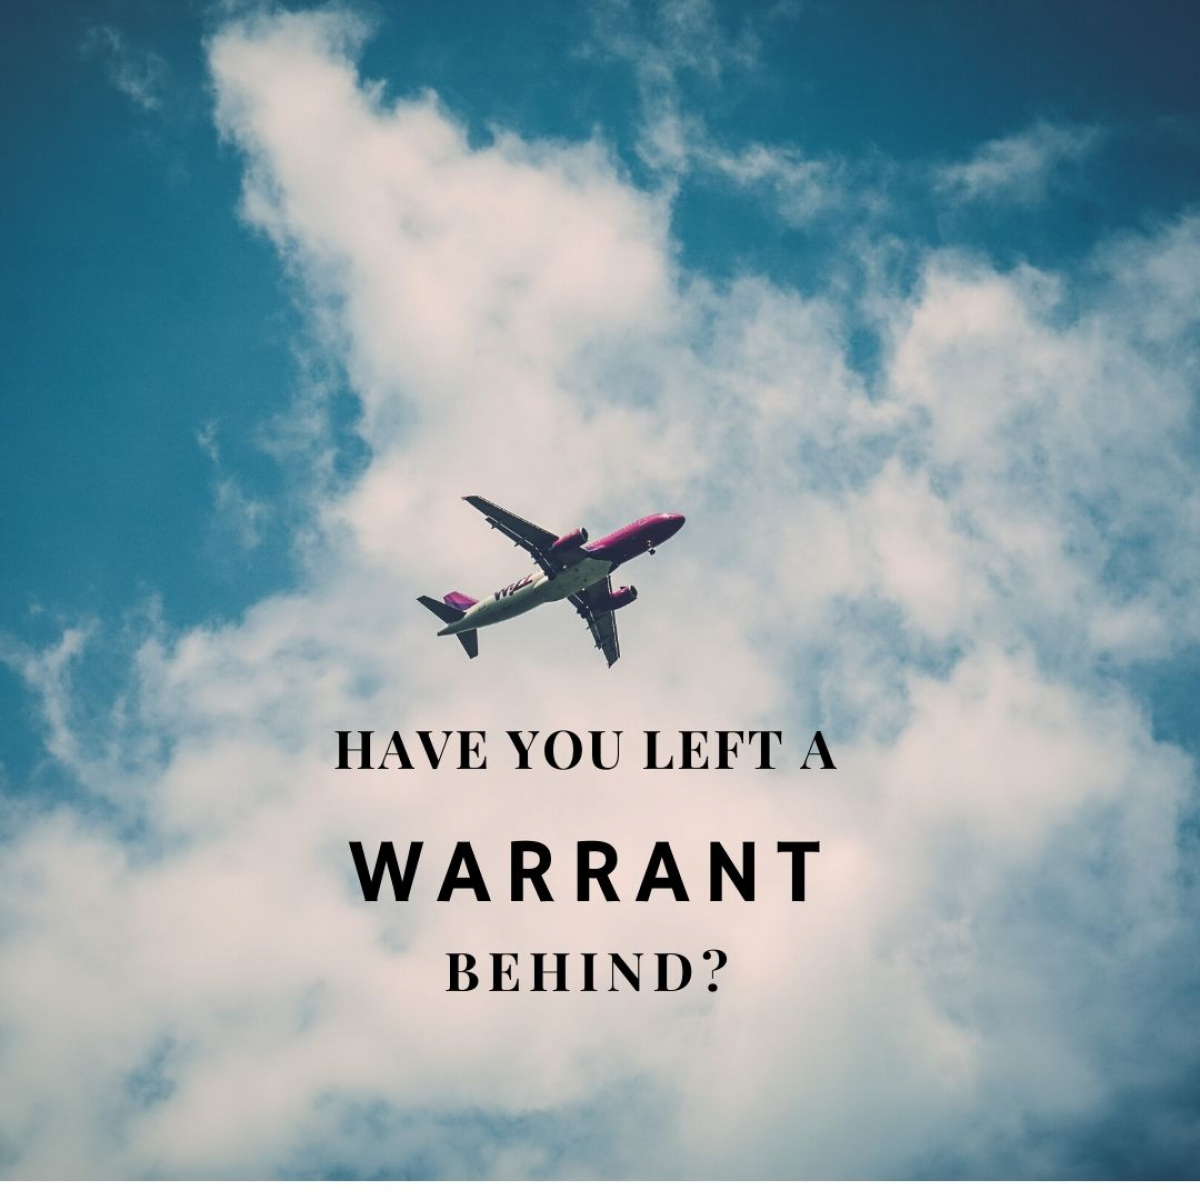 Have You Left The State And A Warrant Behind?